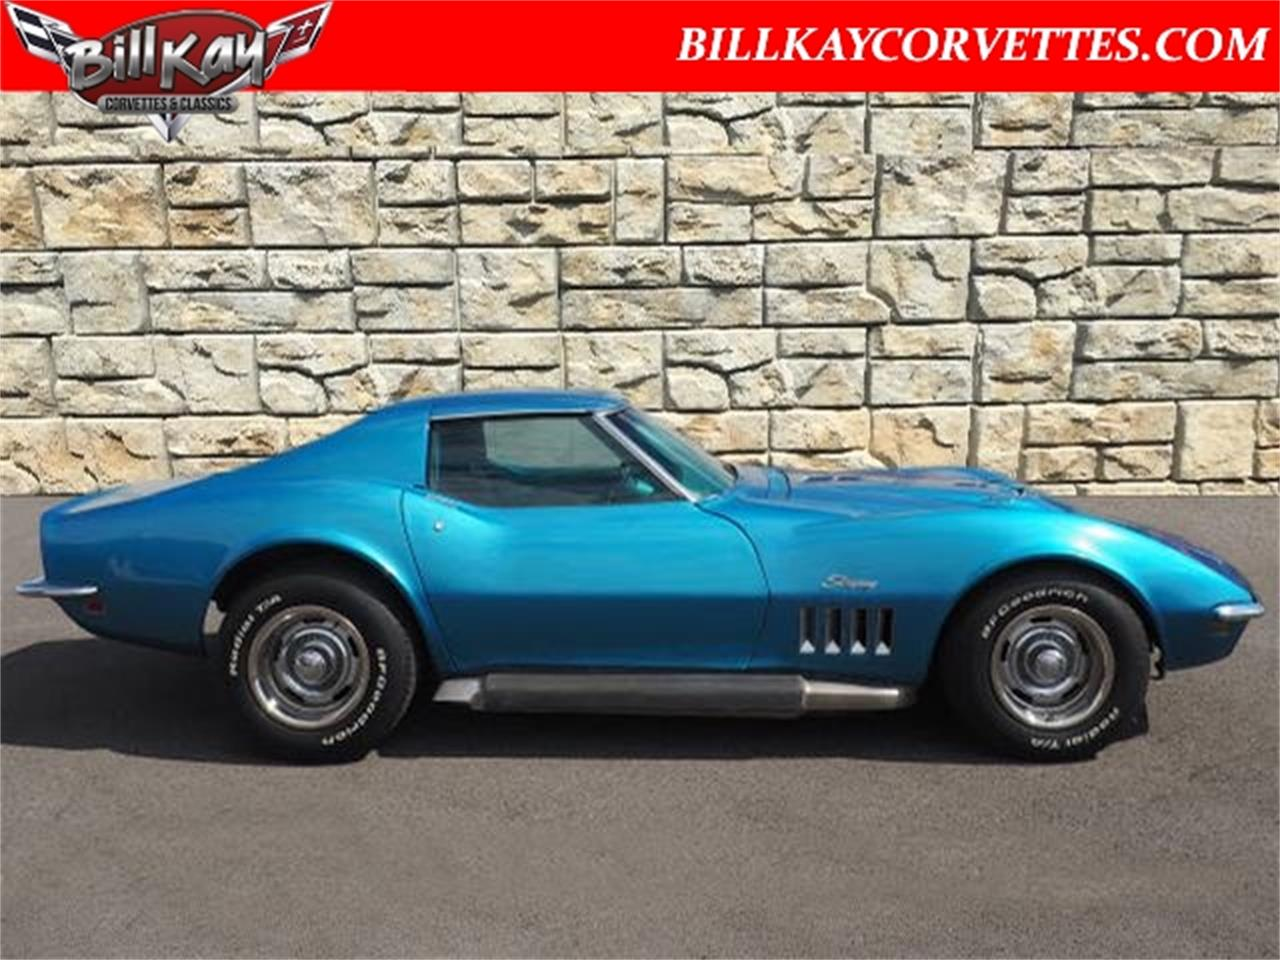 Large Picture of 1969 Chevrolet Corvette - $27,980.00 Offered by Bill Kay Corvettes and Classics - MTY0